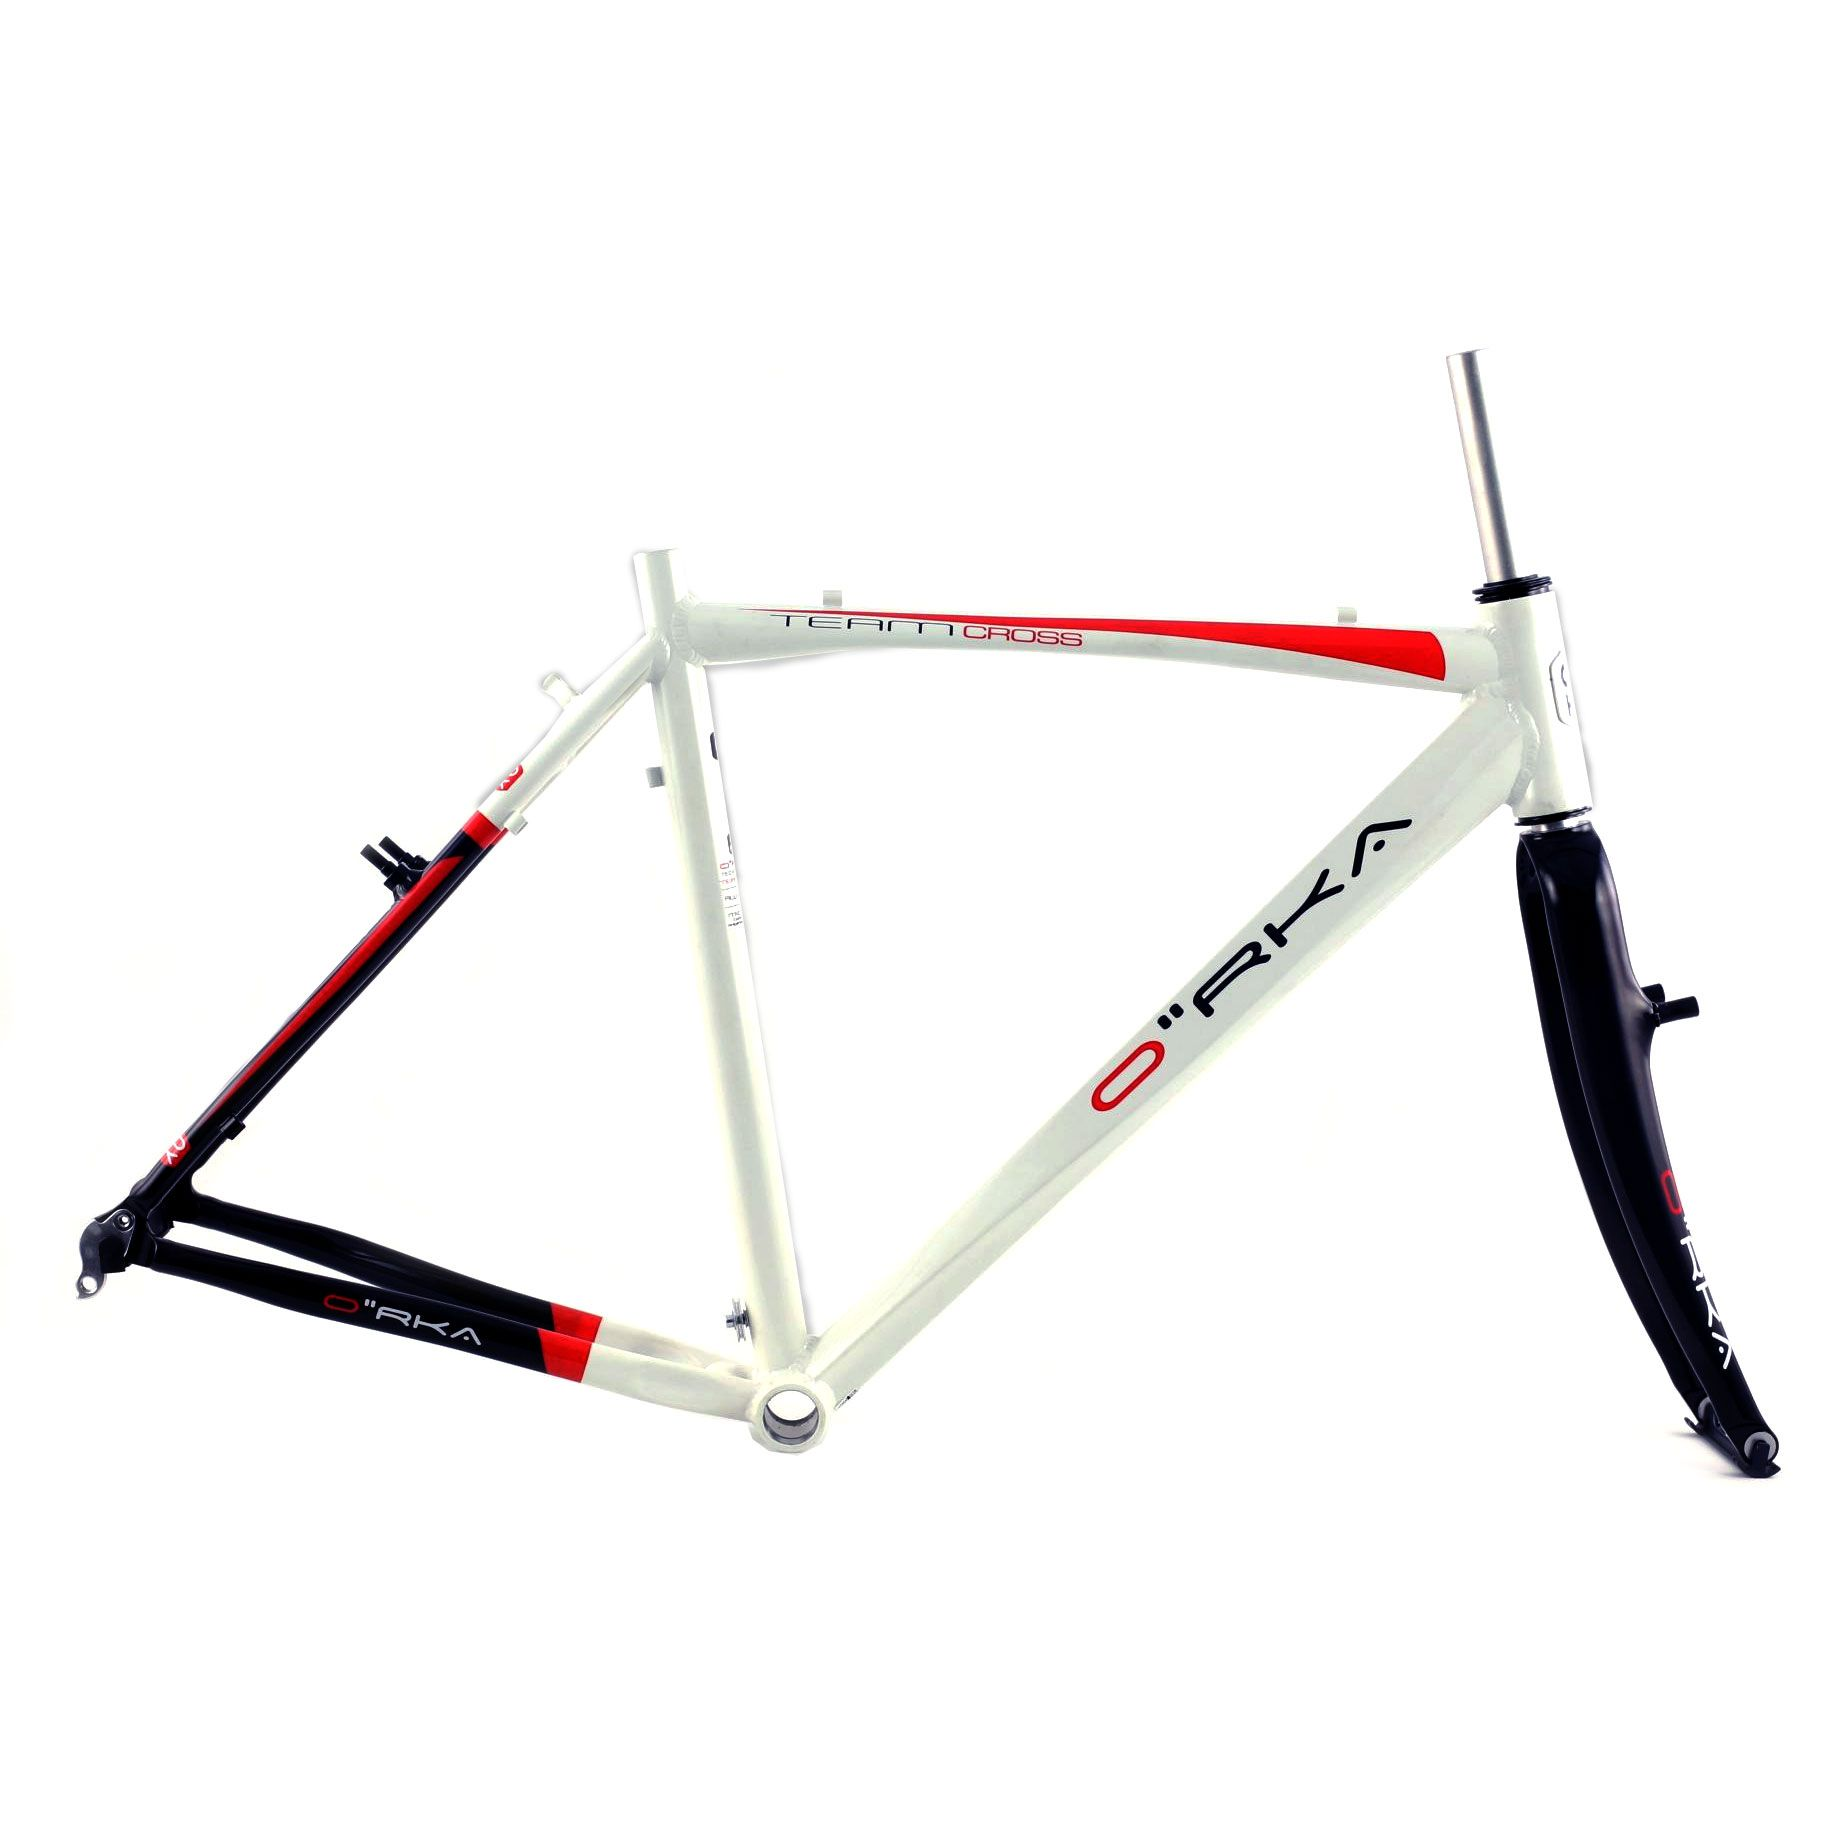 Kit cadre cyclocross Orka Team cross Aluminium - M / 54 cm